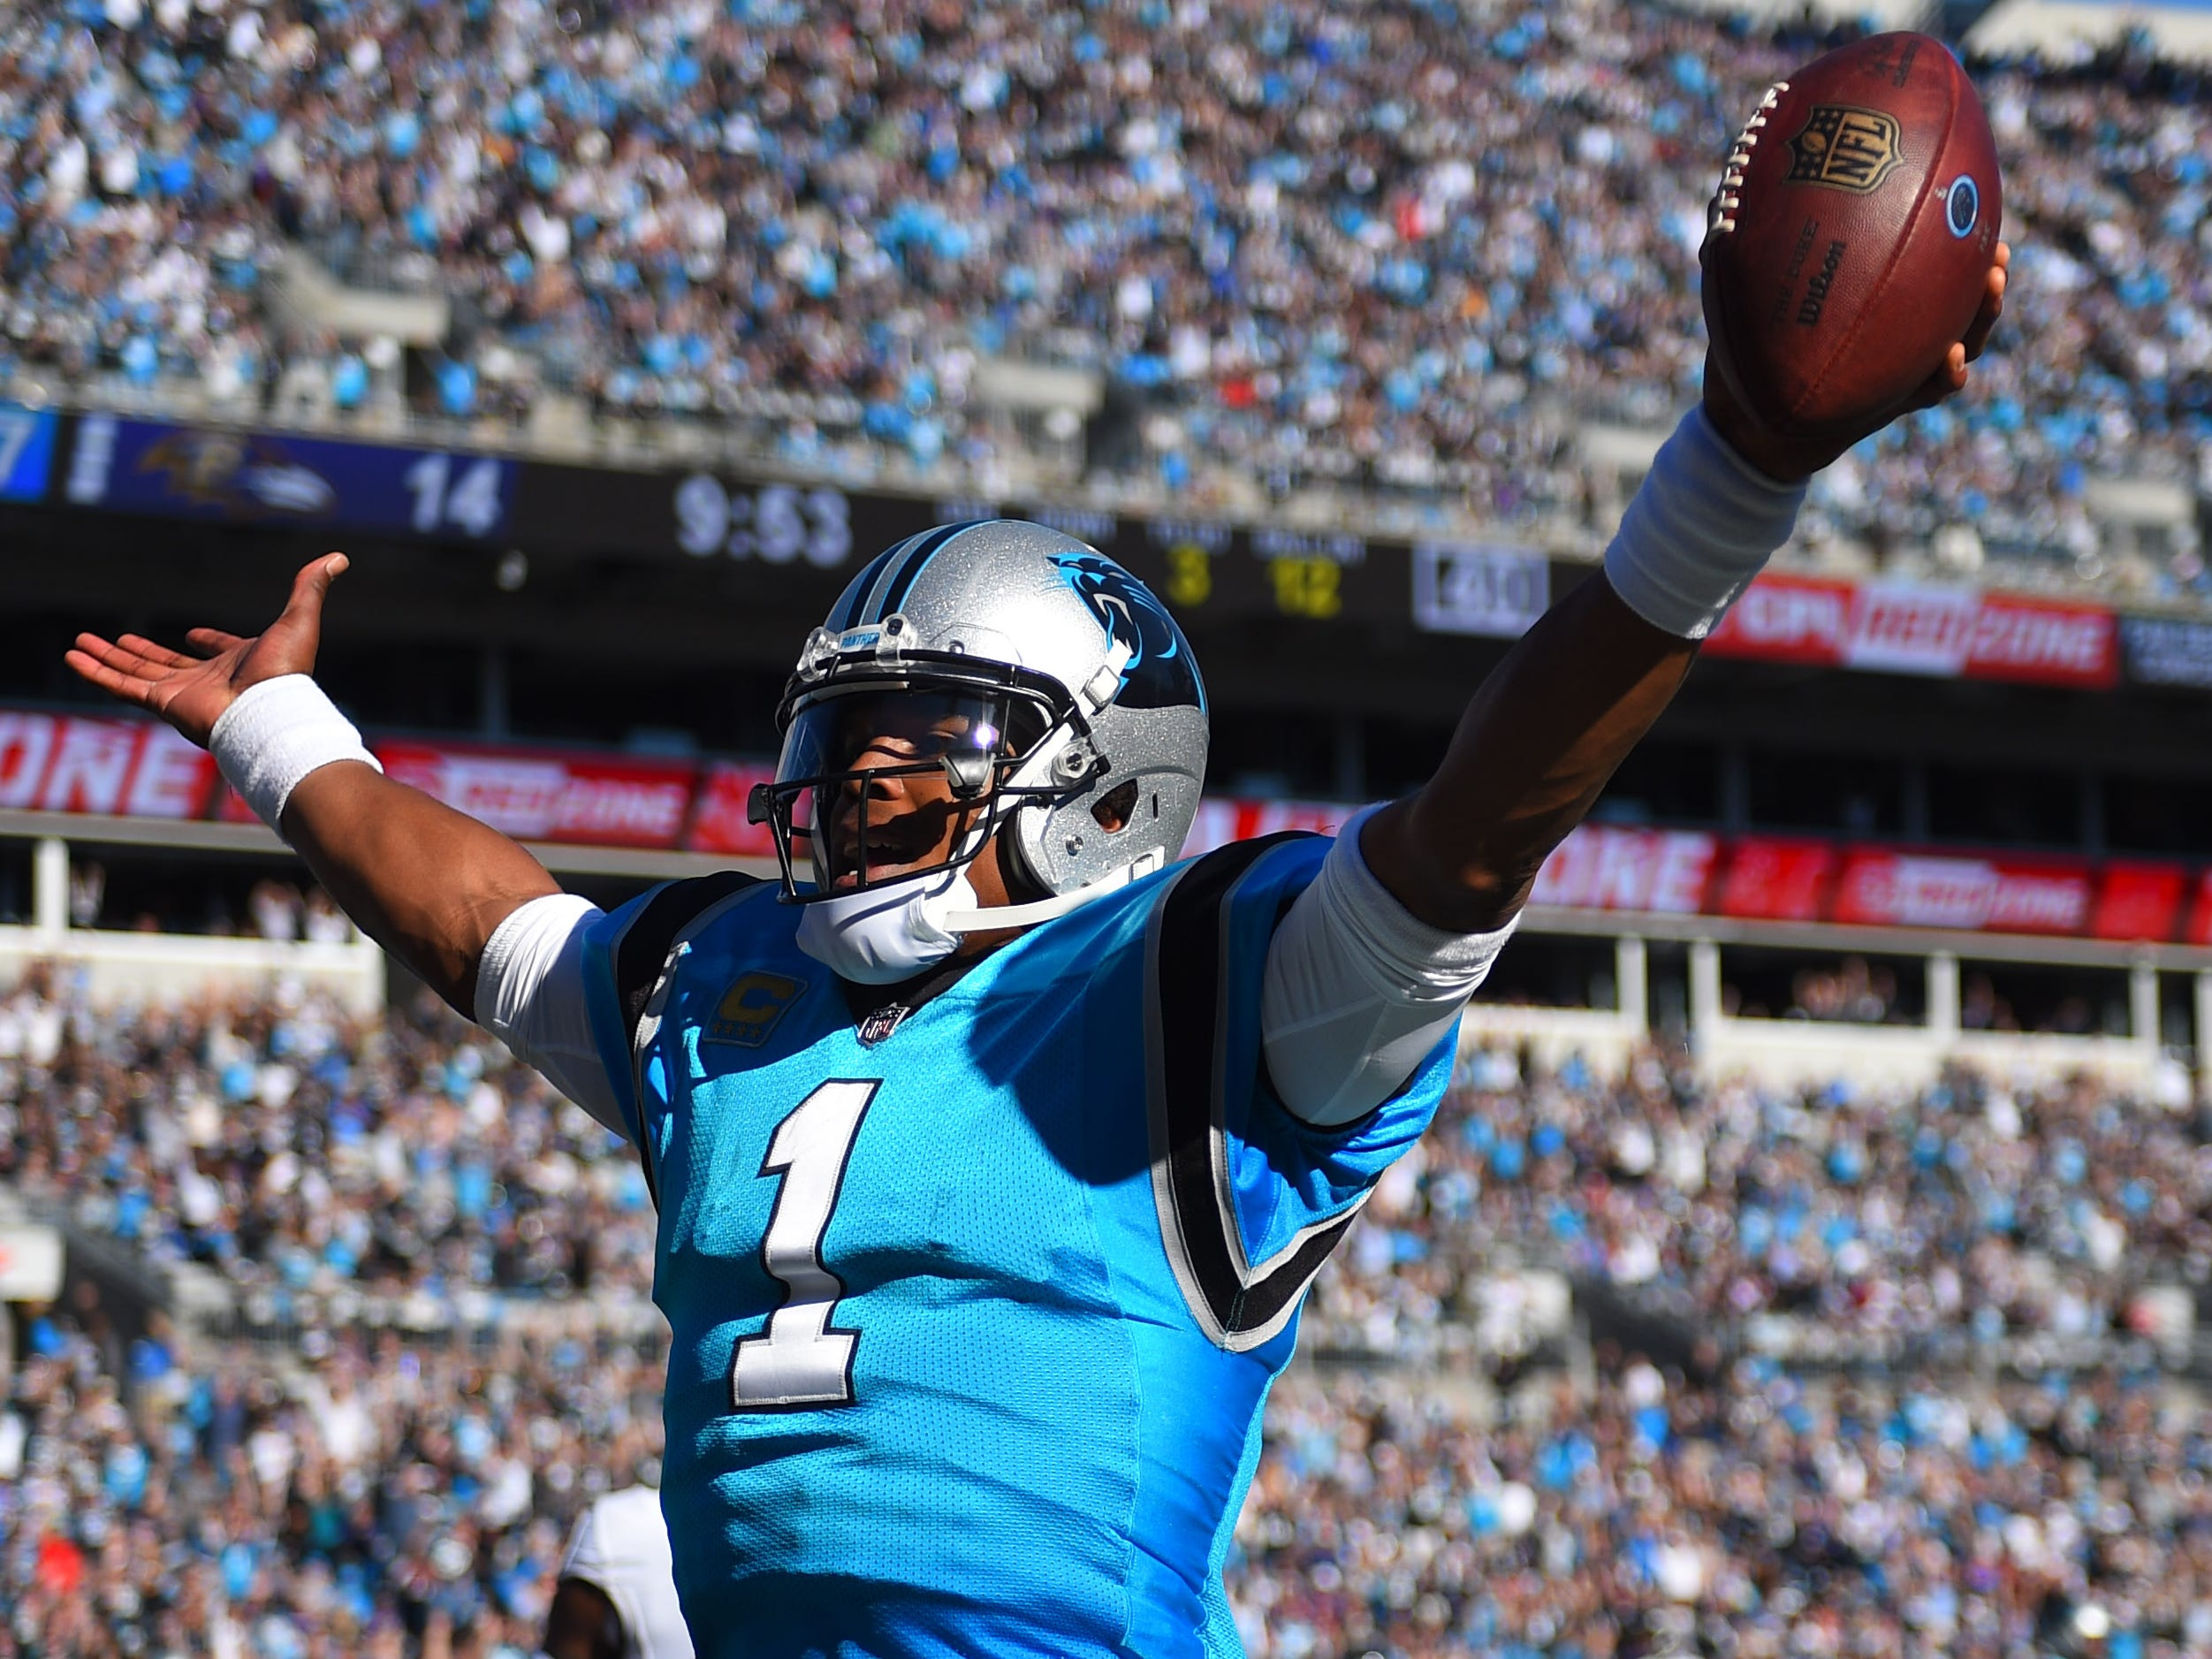 8. Panthers (10): Treat — Cam Newton played so well against Ravens' No. 1 defense, backup Taylor Heinicke got to play and complete career-long 13-yard pass.